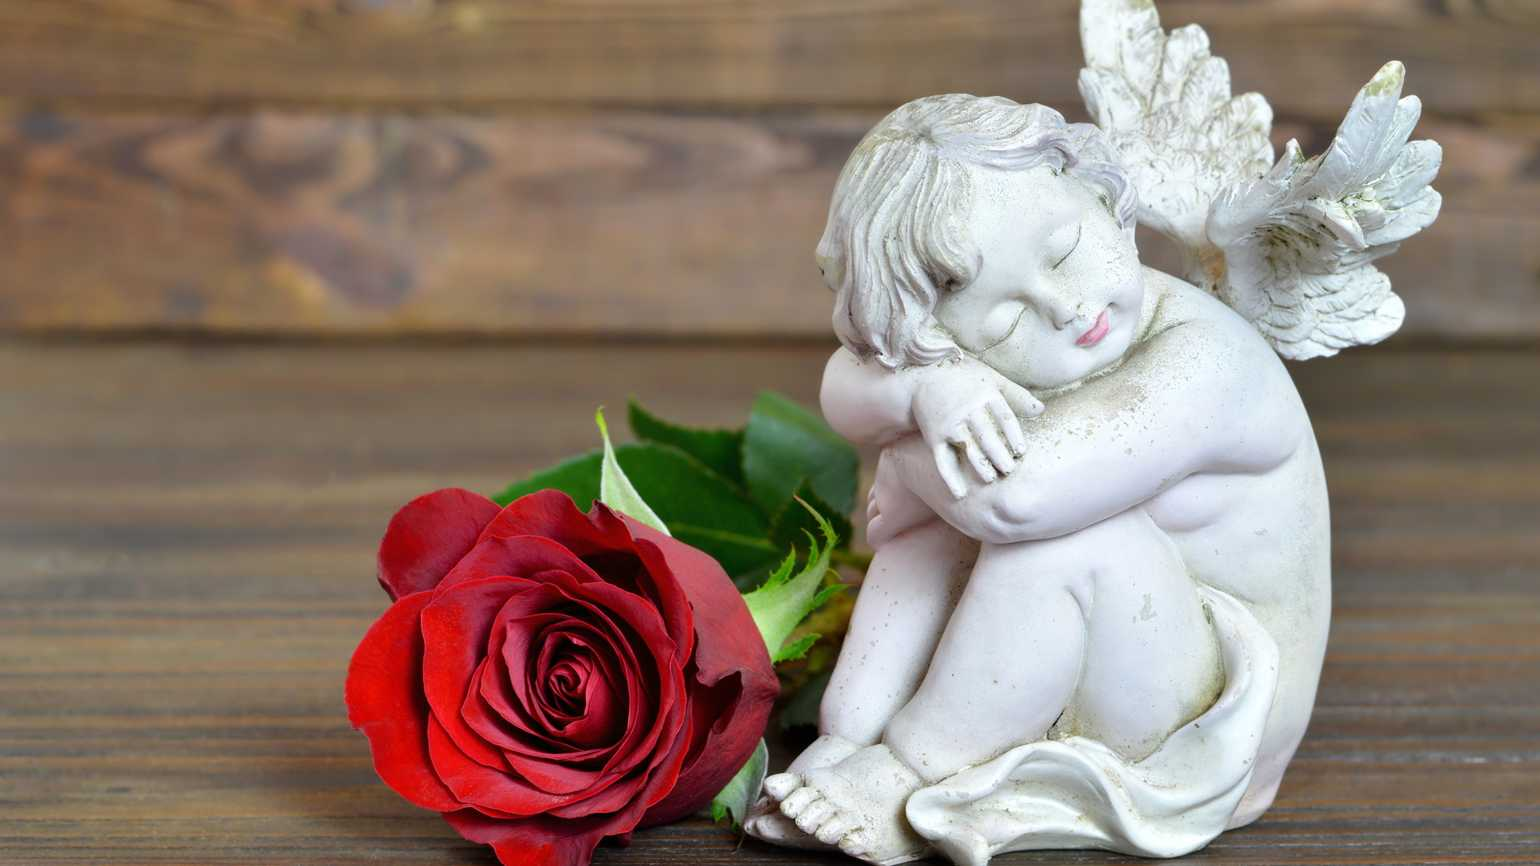 A small figurine of an angel next to a red rose.